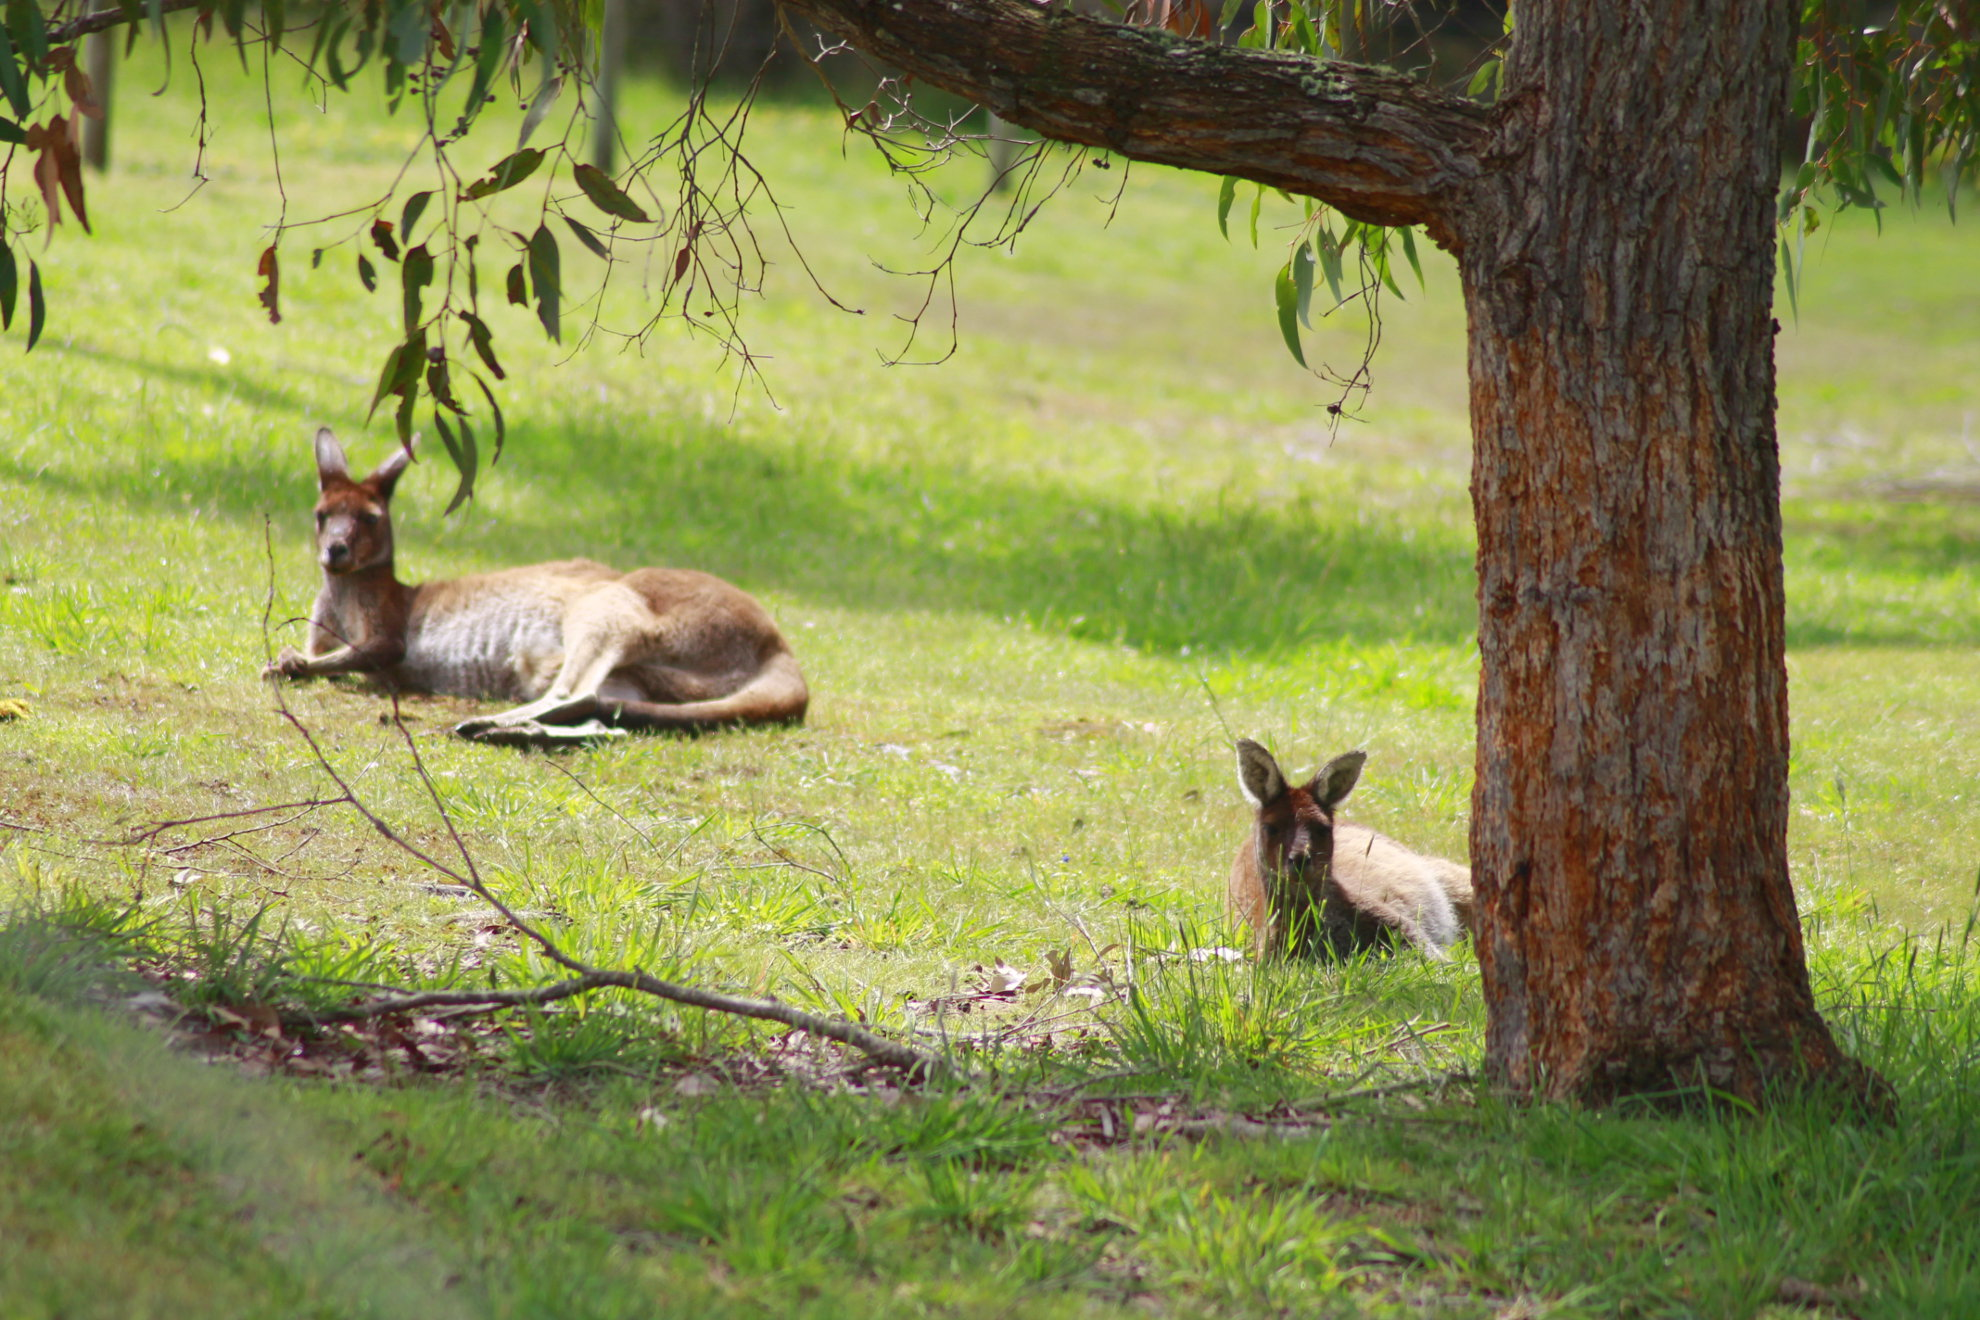 Lazy roos sleeping under a tree